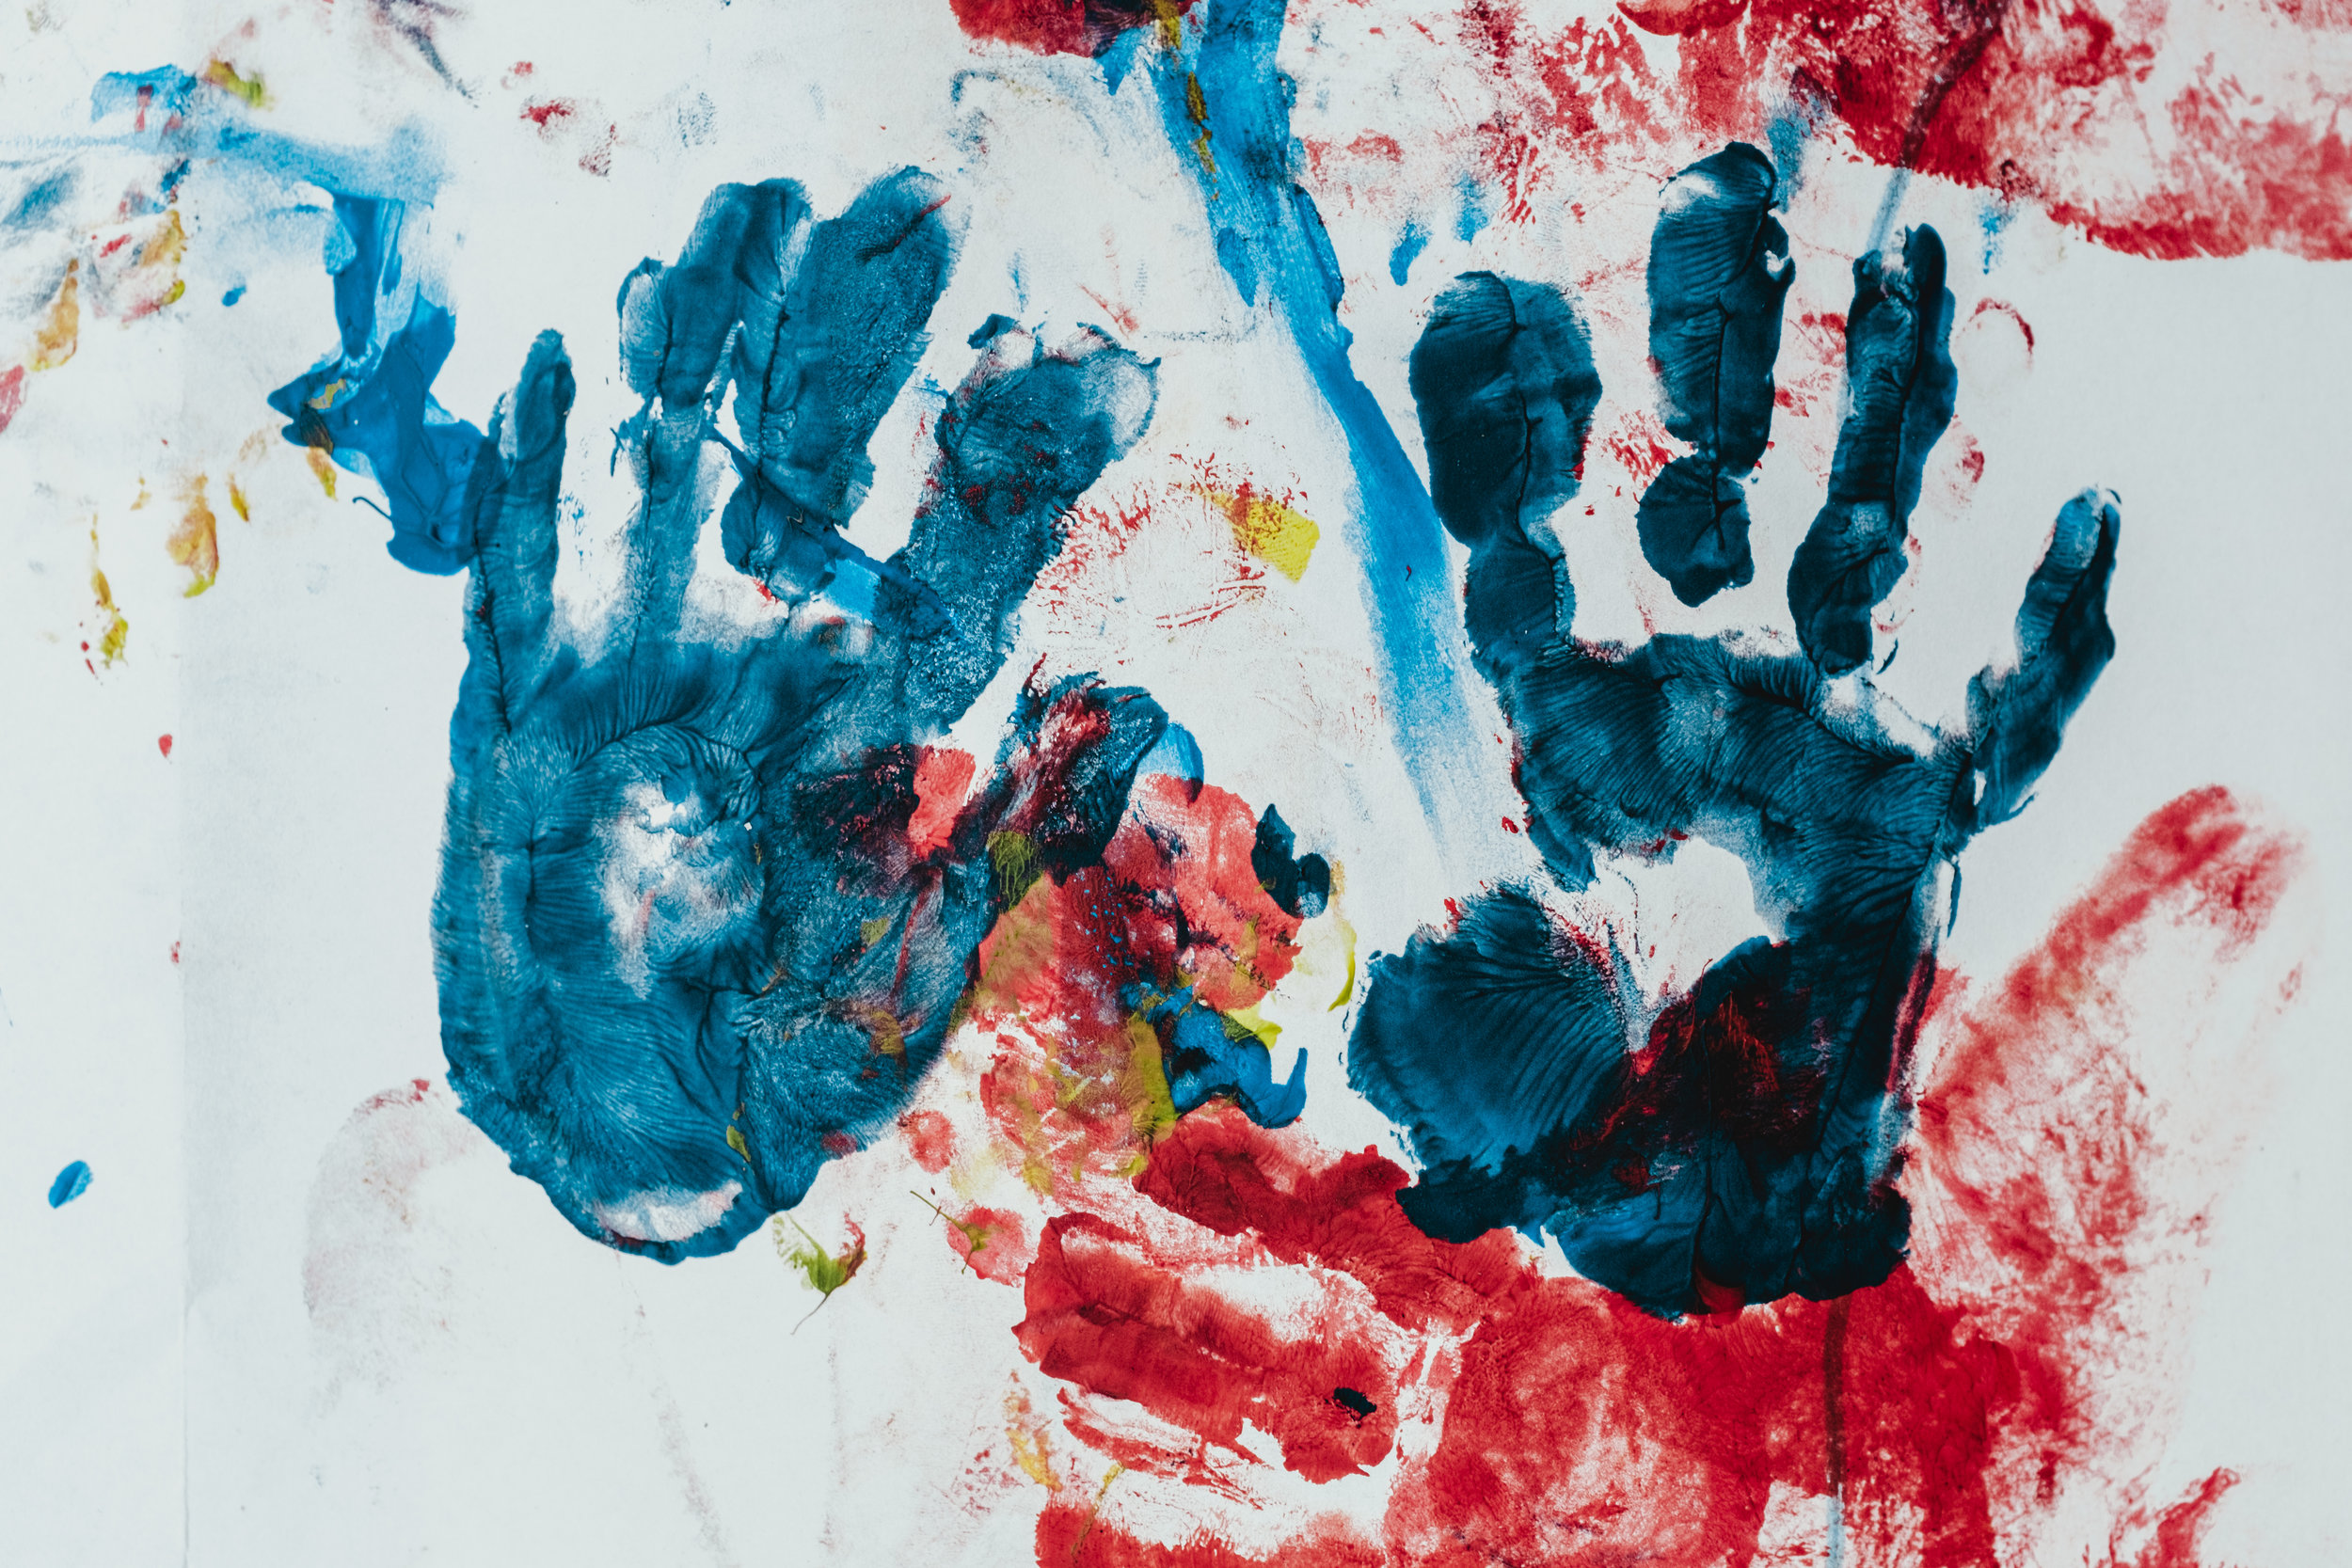 Image of two blue hands from finger painting.